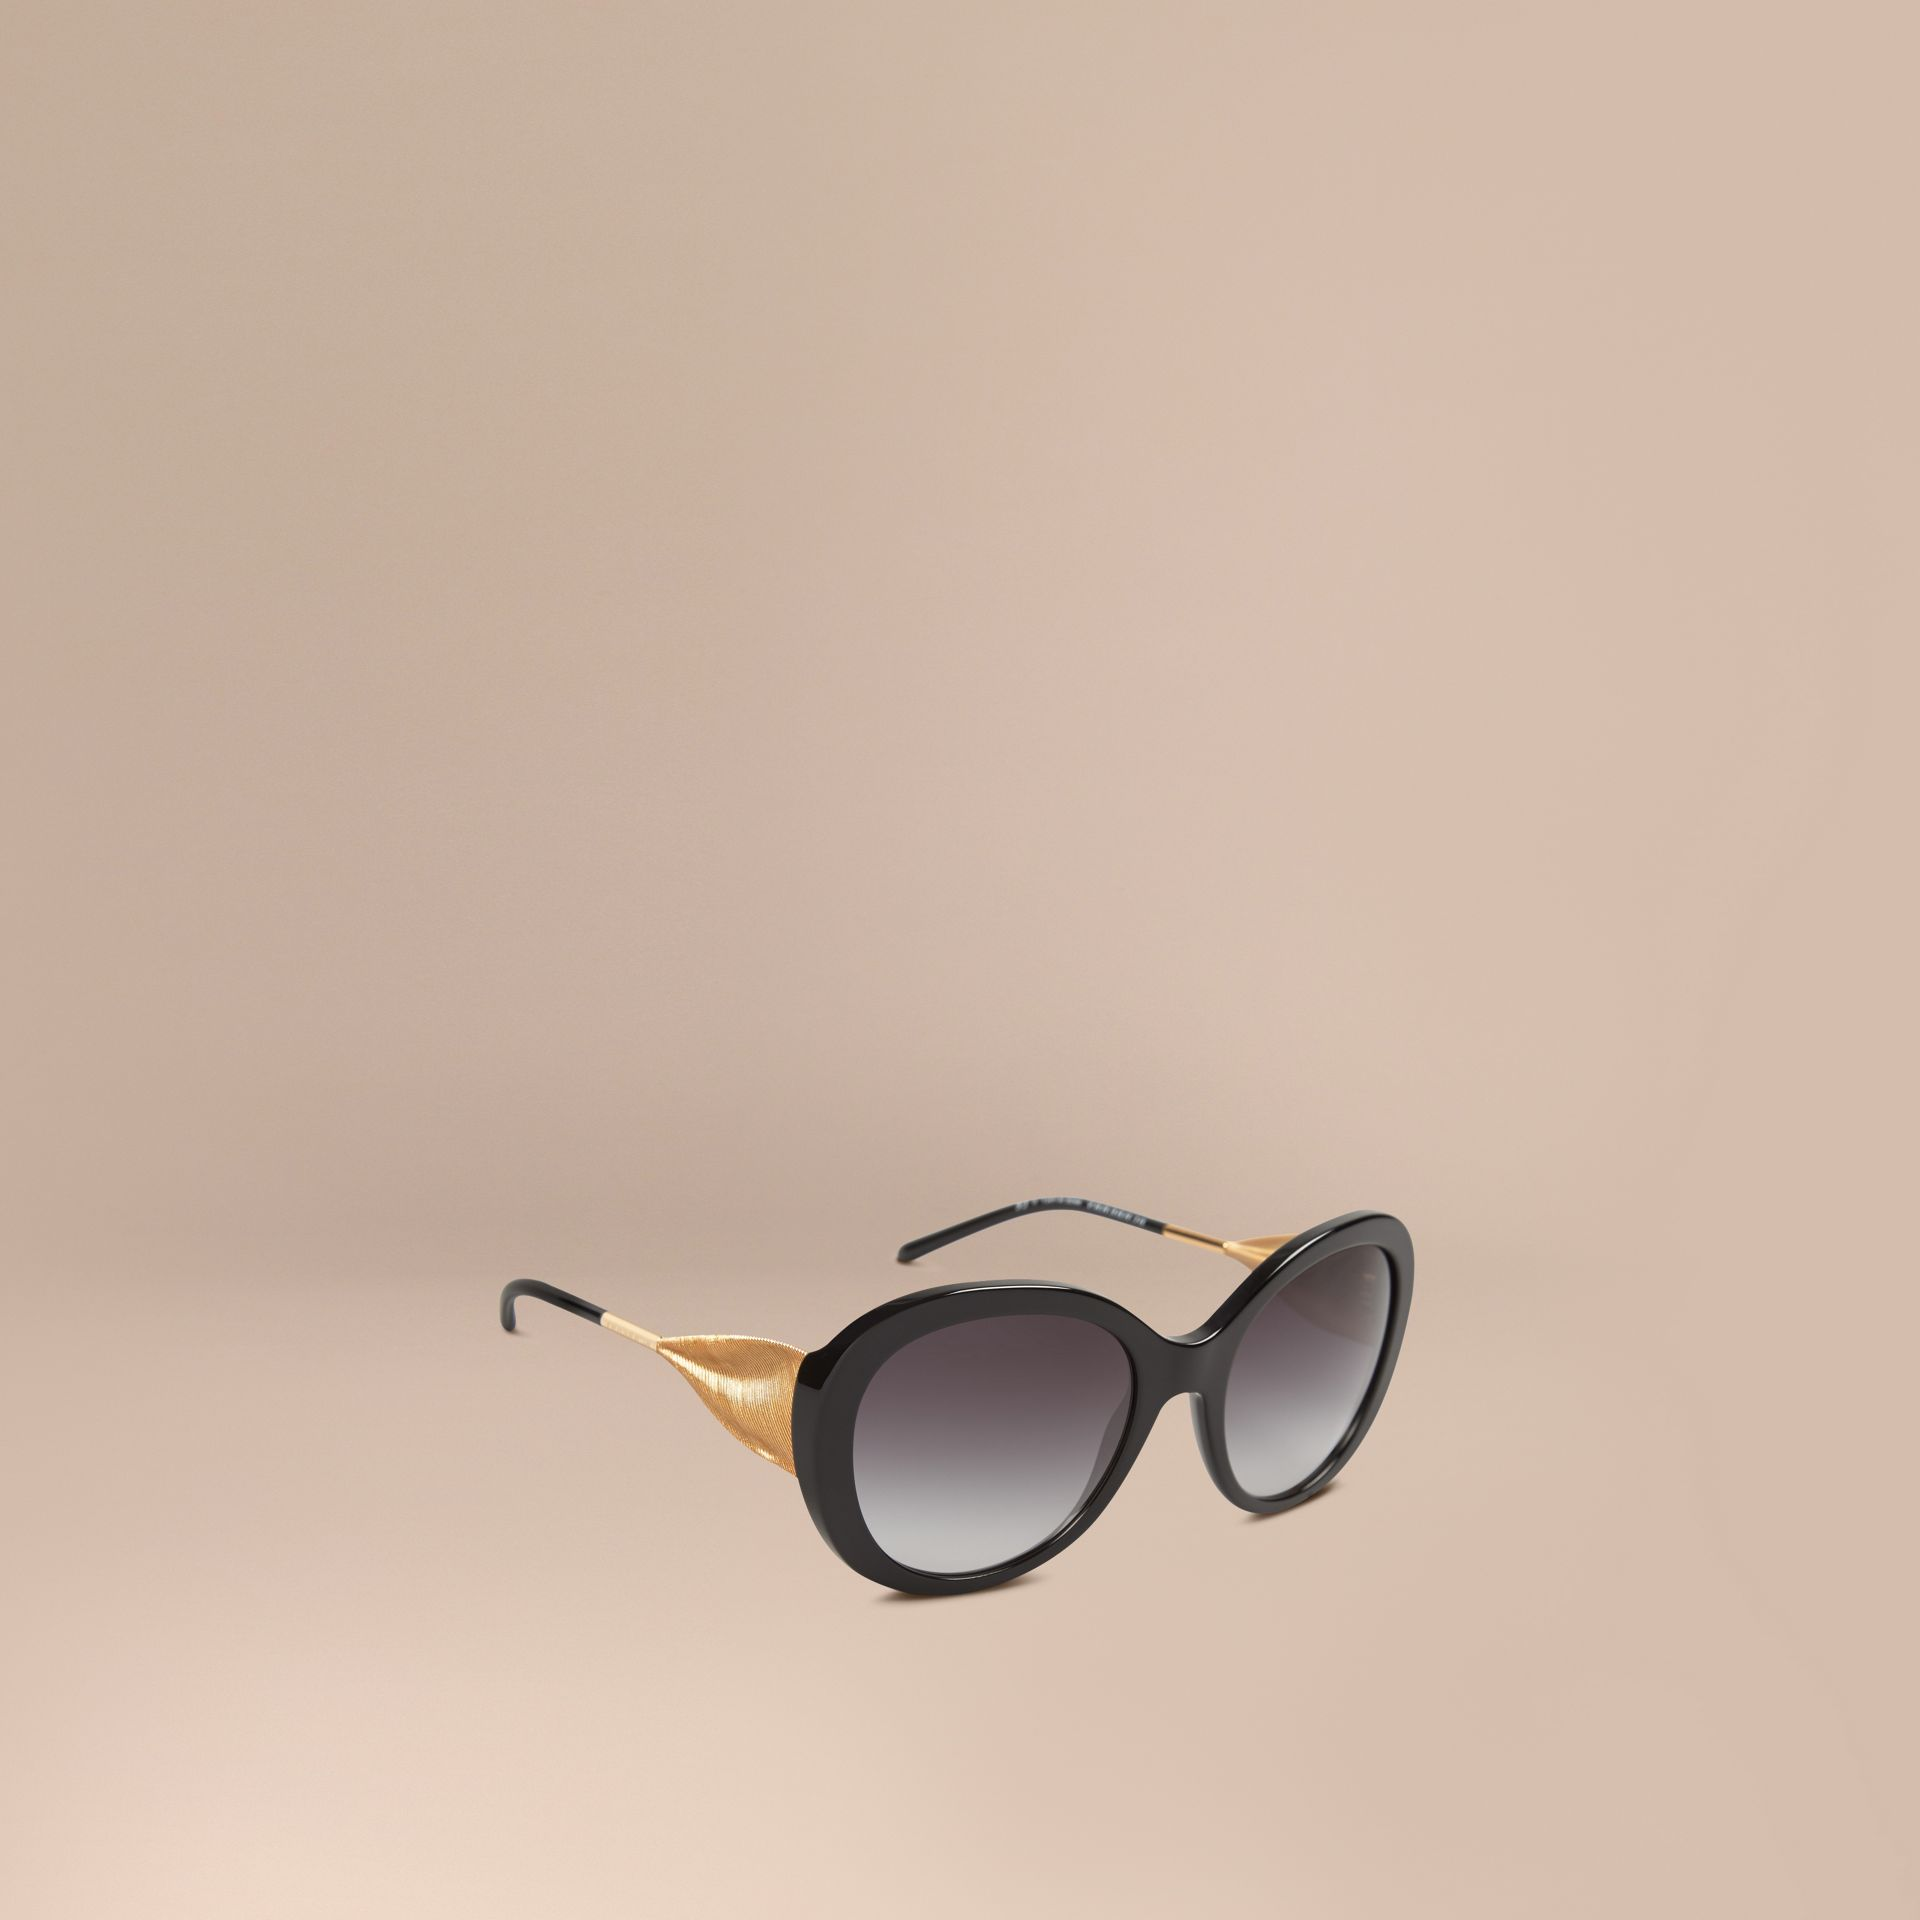 Oversize Round Frame Sunglasses in Black - Women | Burberry - gallery image 1